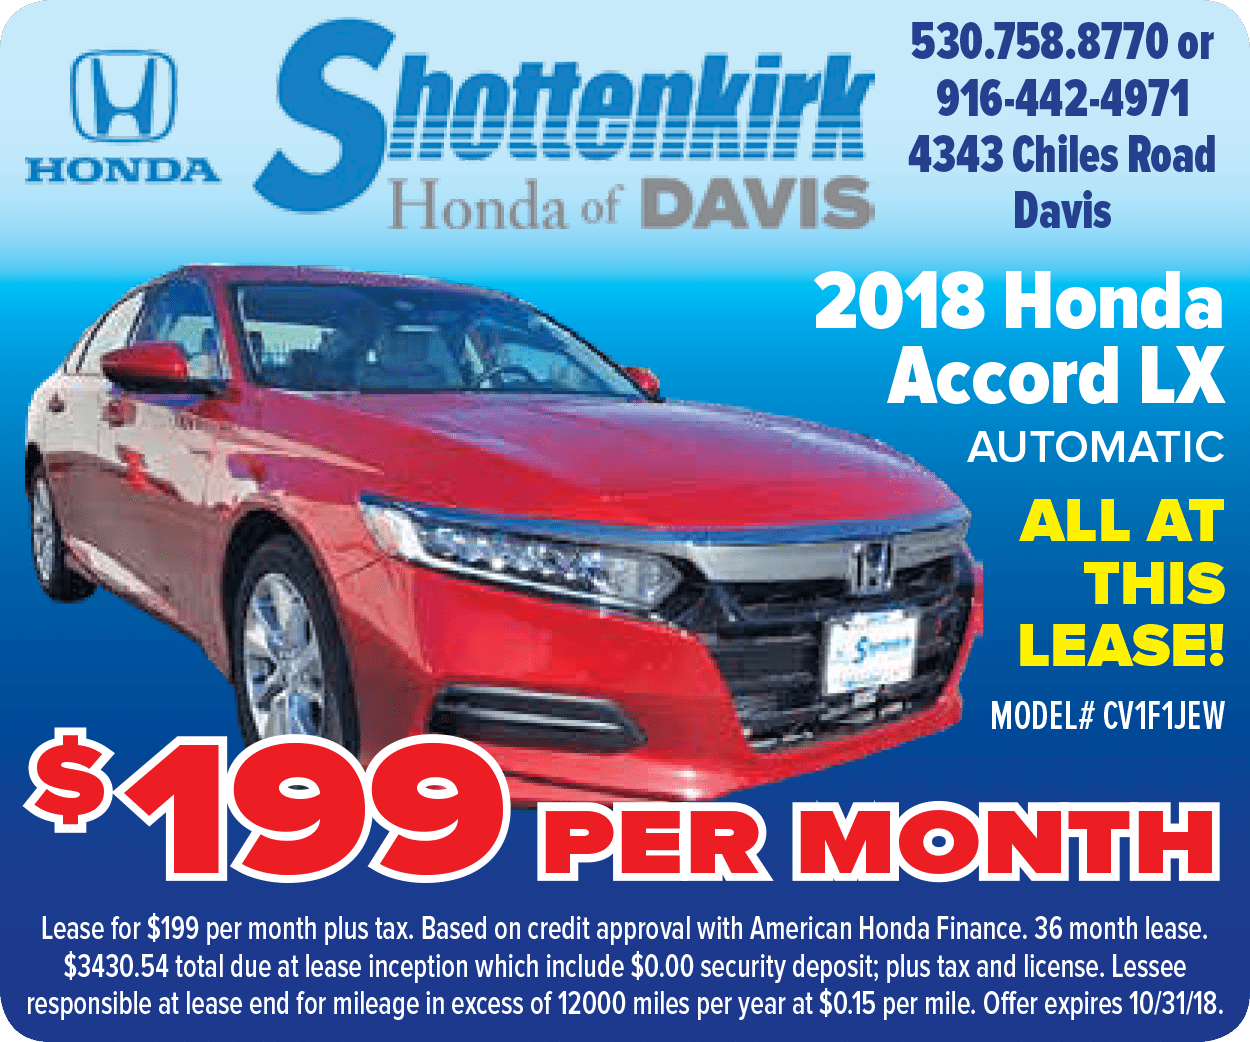 2018 Honda Accord LX 1.5T CVT Lease Special for $199 per month for 36 months at Shottenkirk Honda of Davis